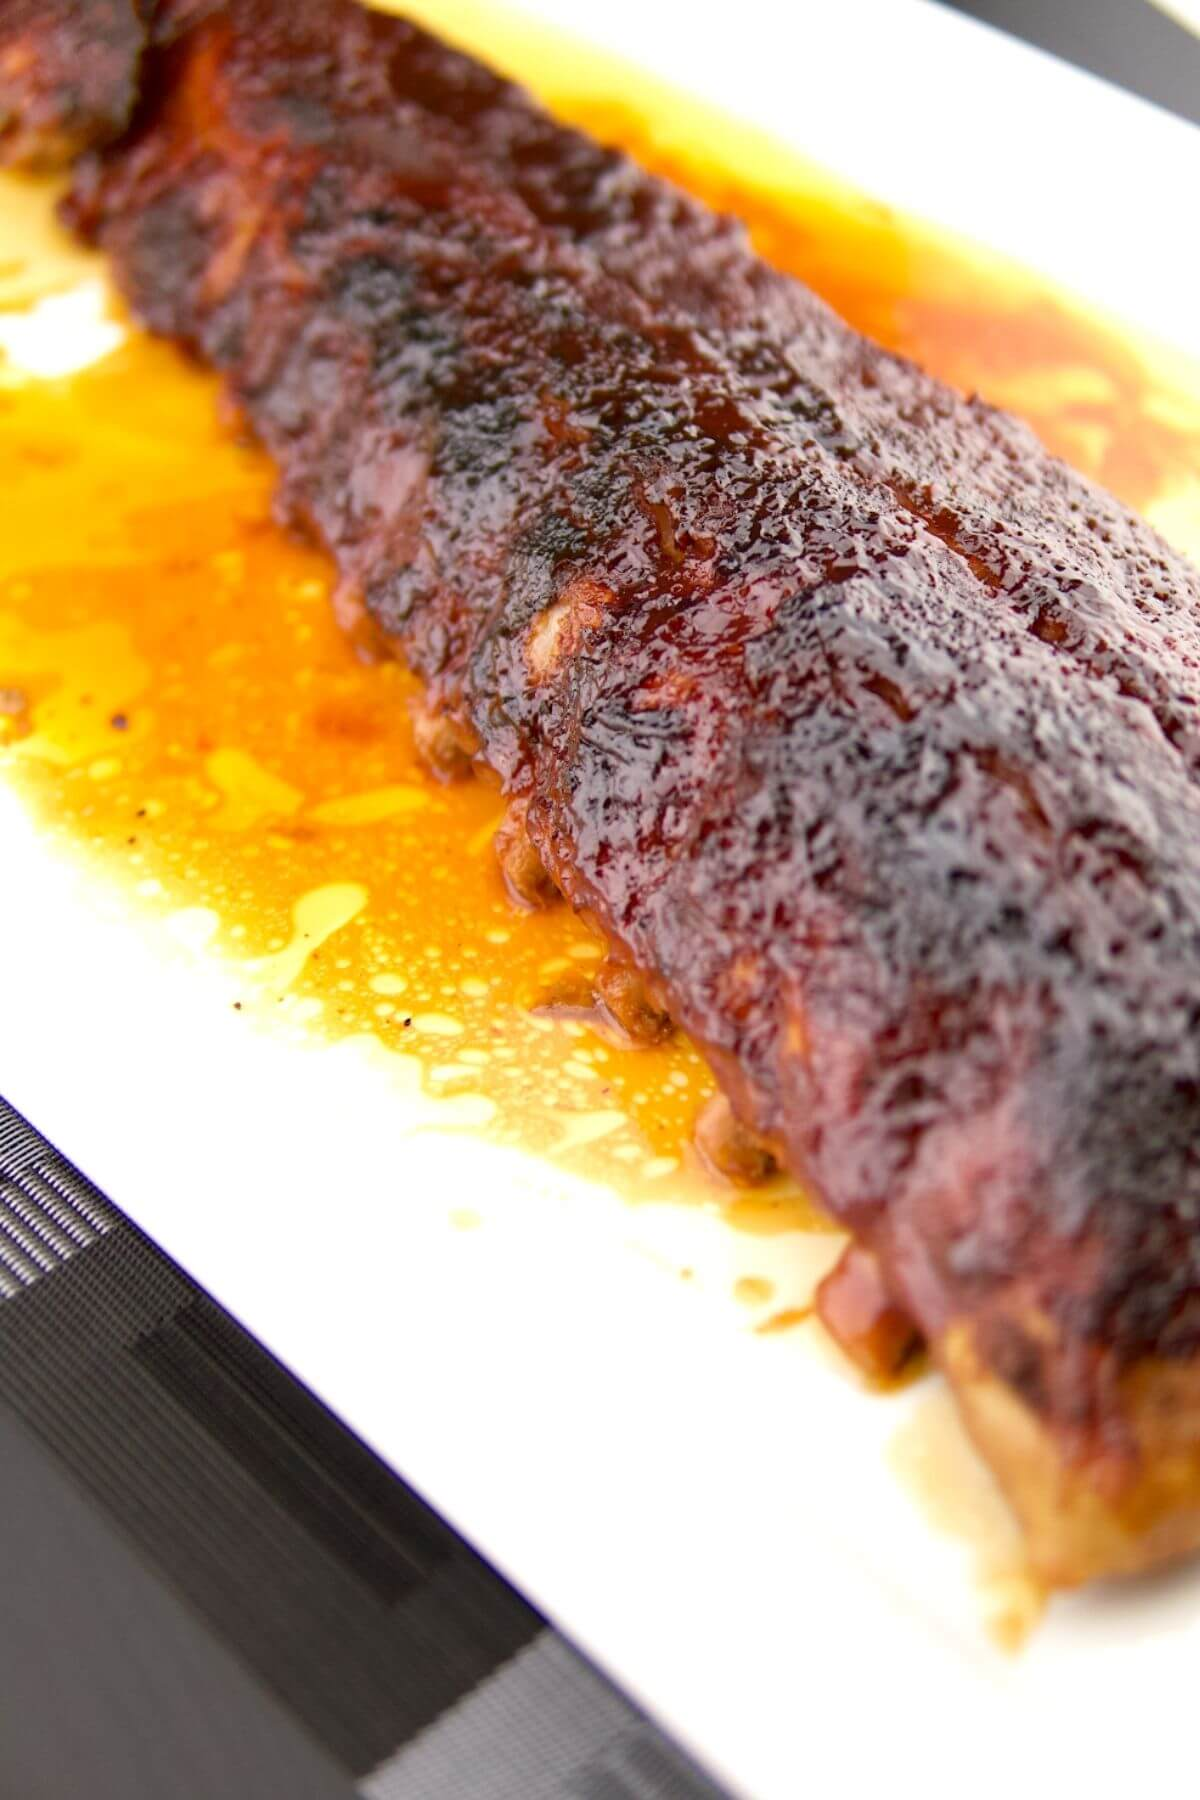 Saucy BBQ Fall Off The Bone Oven Baked Ribs 1 of 3